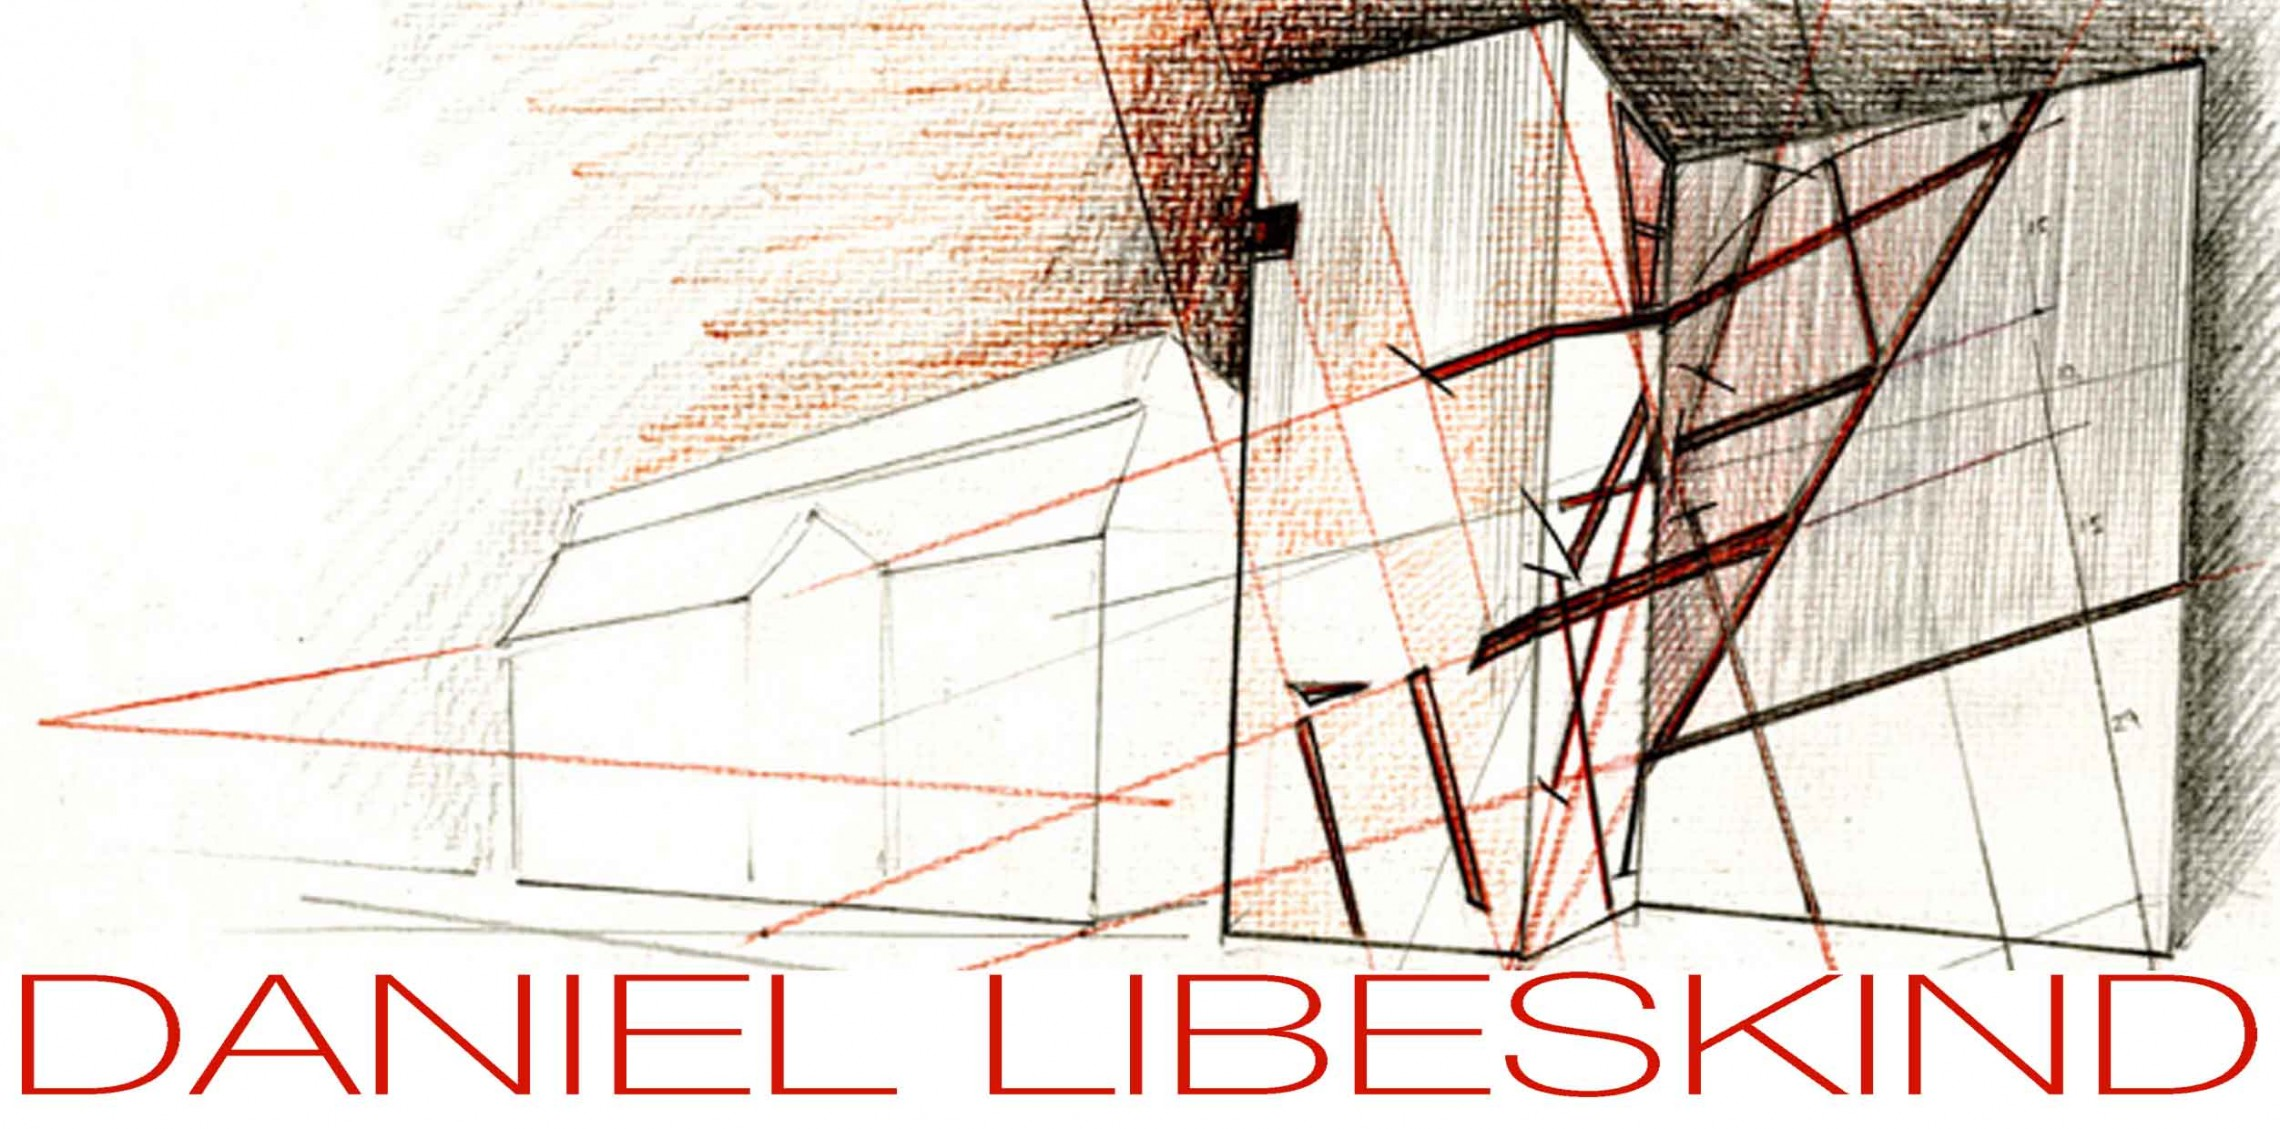 Exhibition of daniel libeskind s architectural drawings for Daniel libeskind architectural style